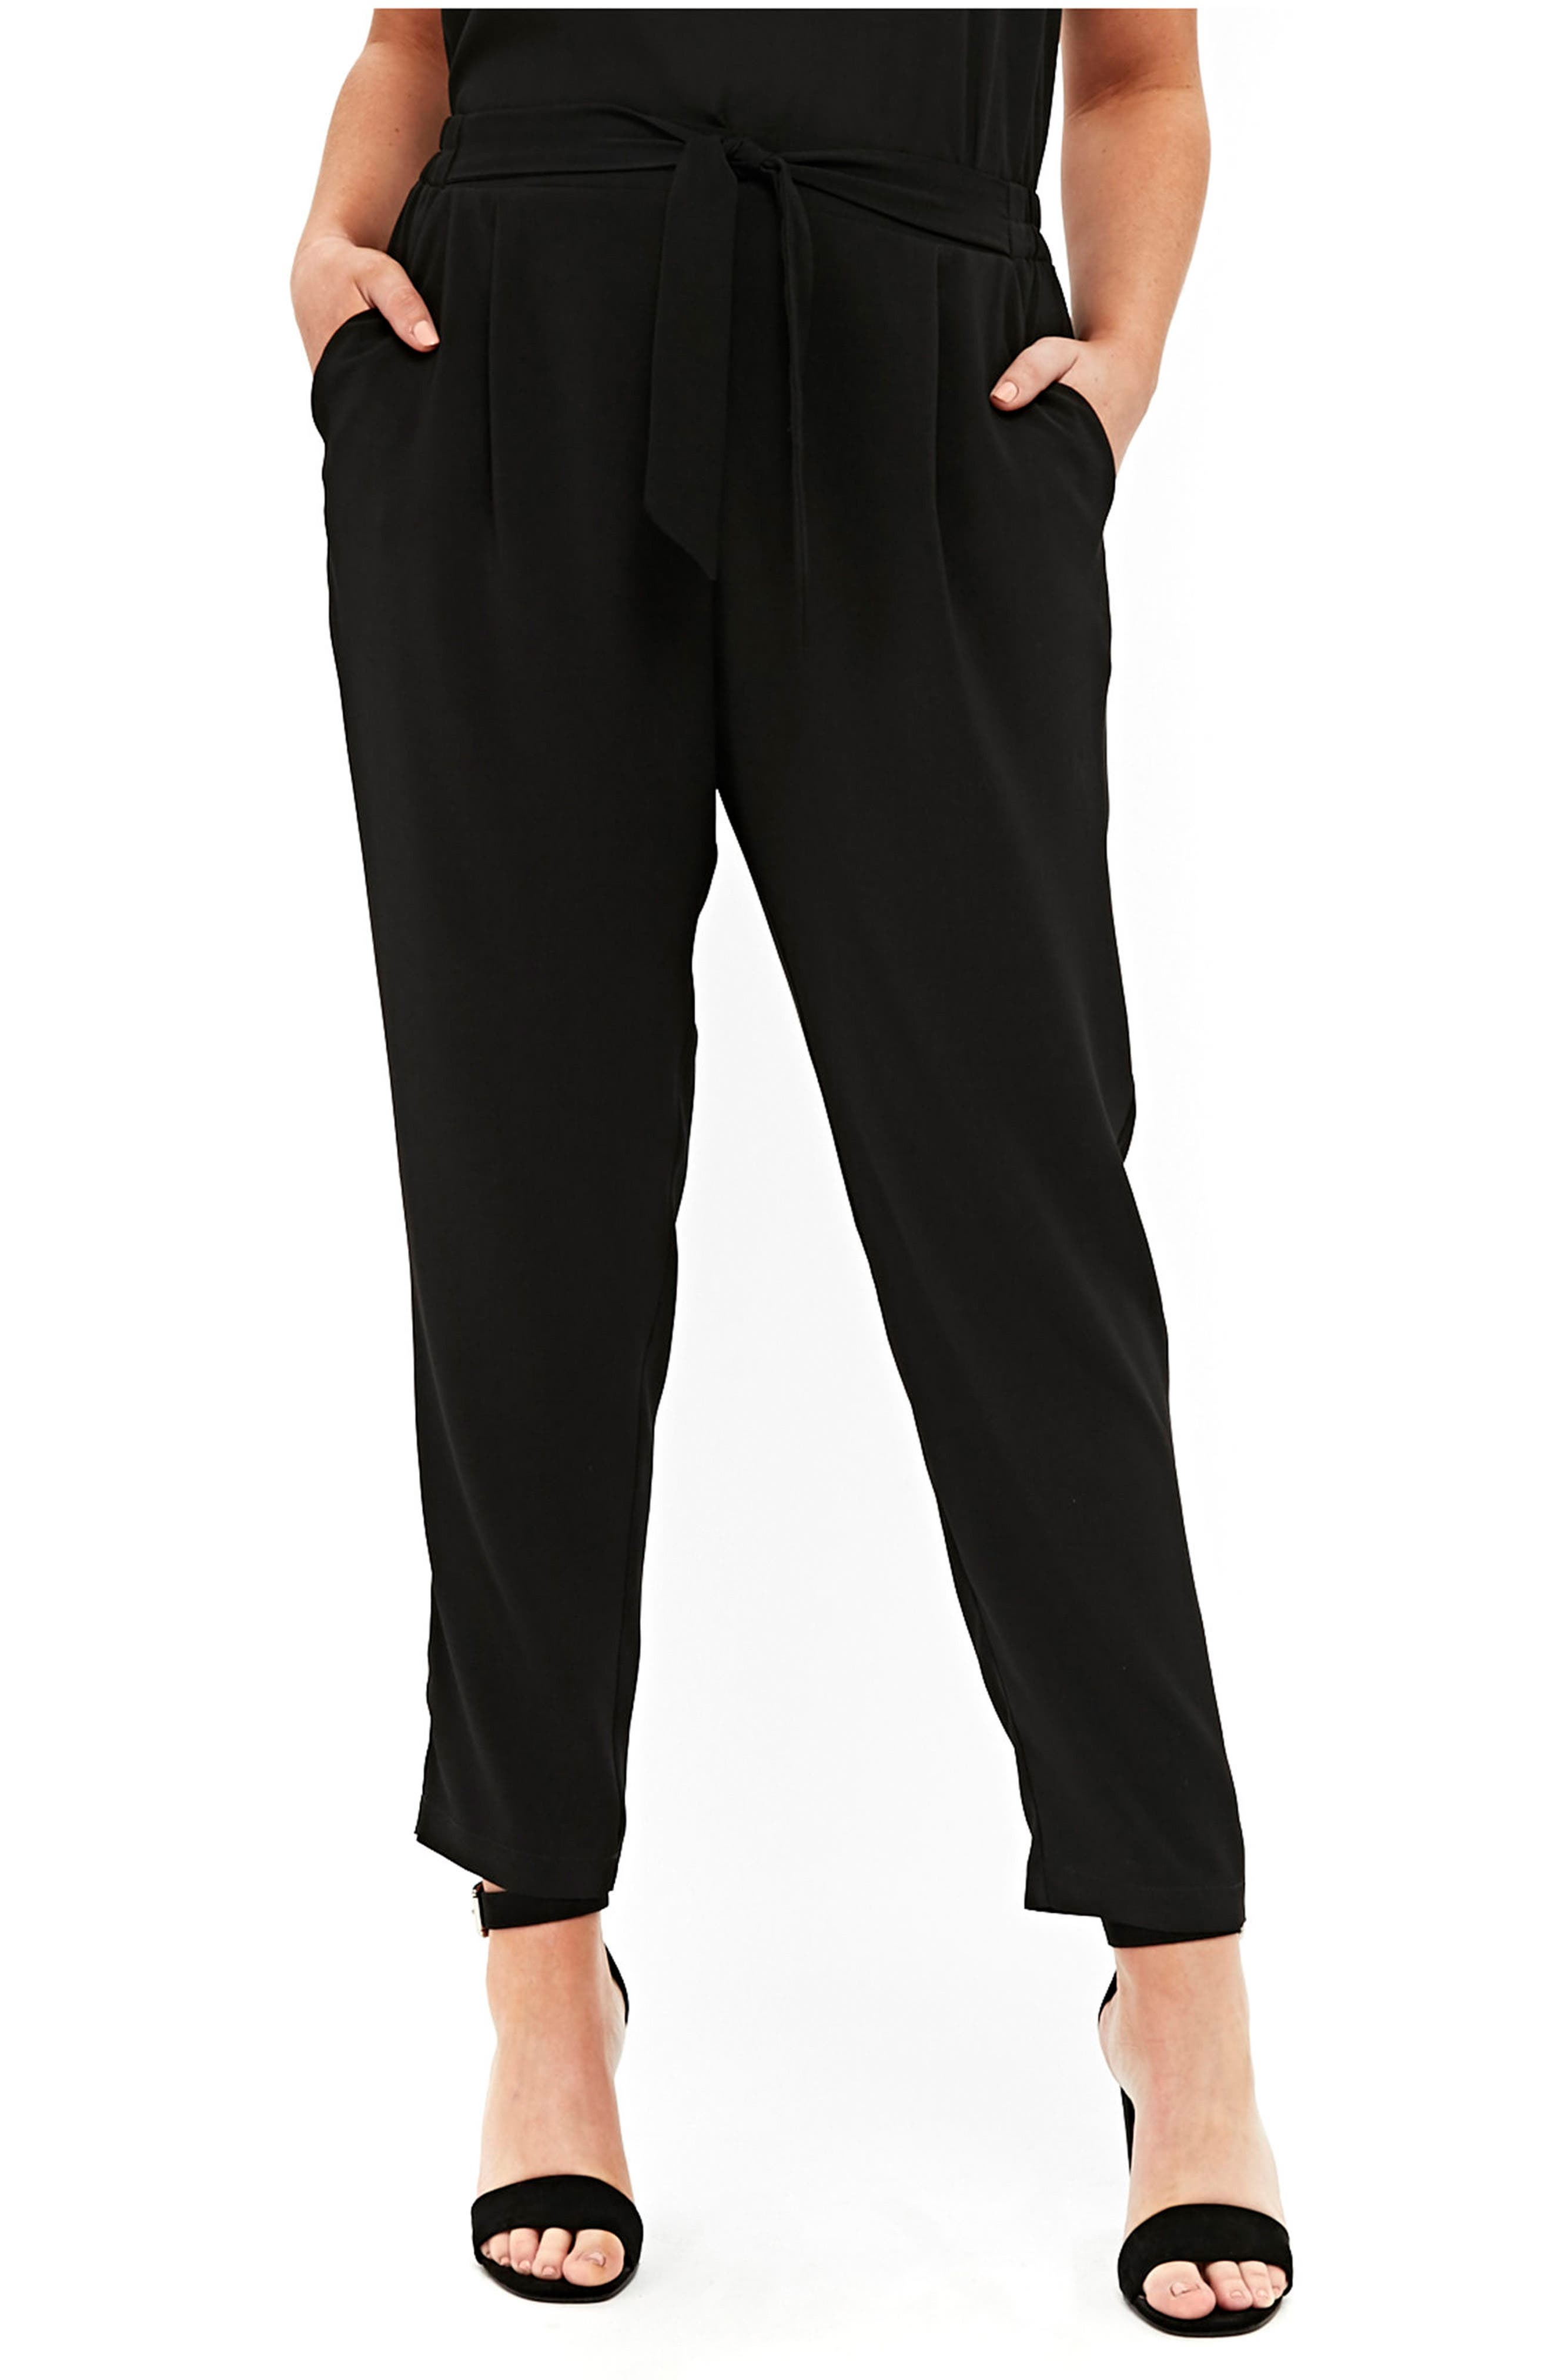 Ripple Tapered Pants,                         Main,                         color,